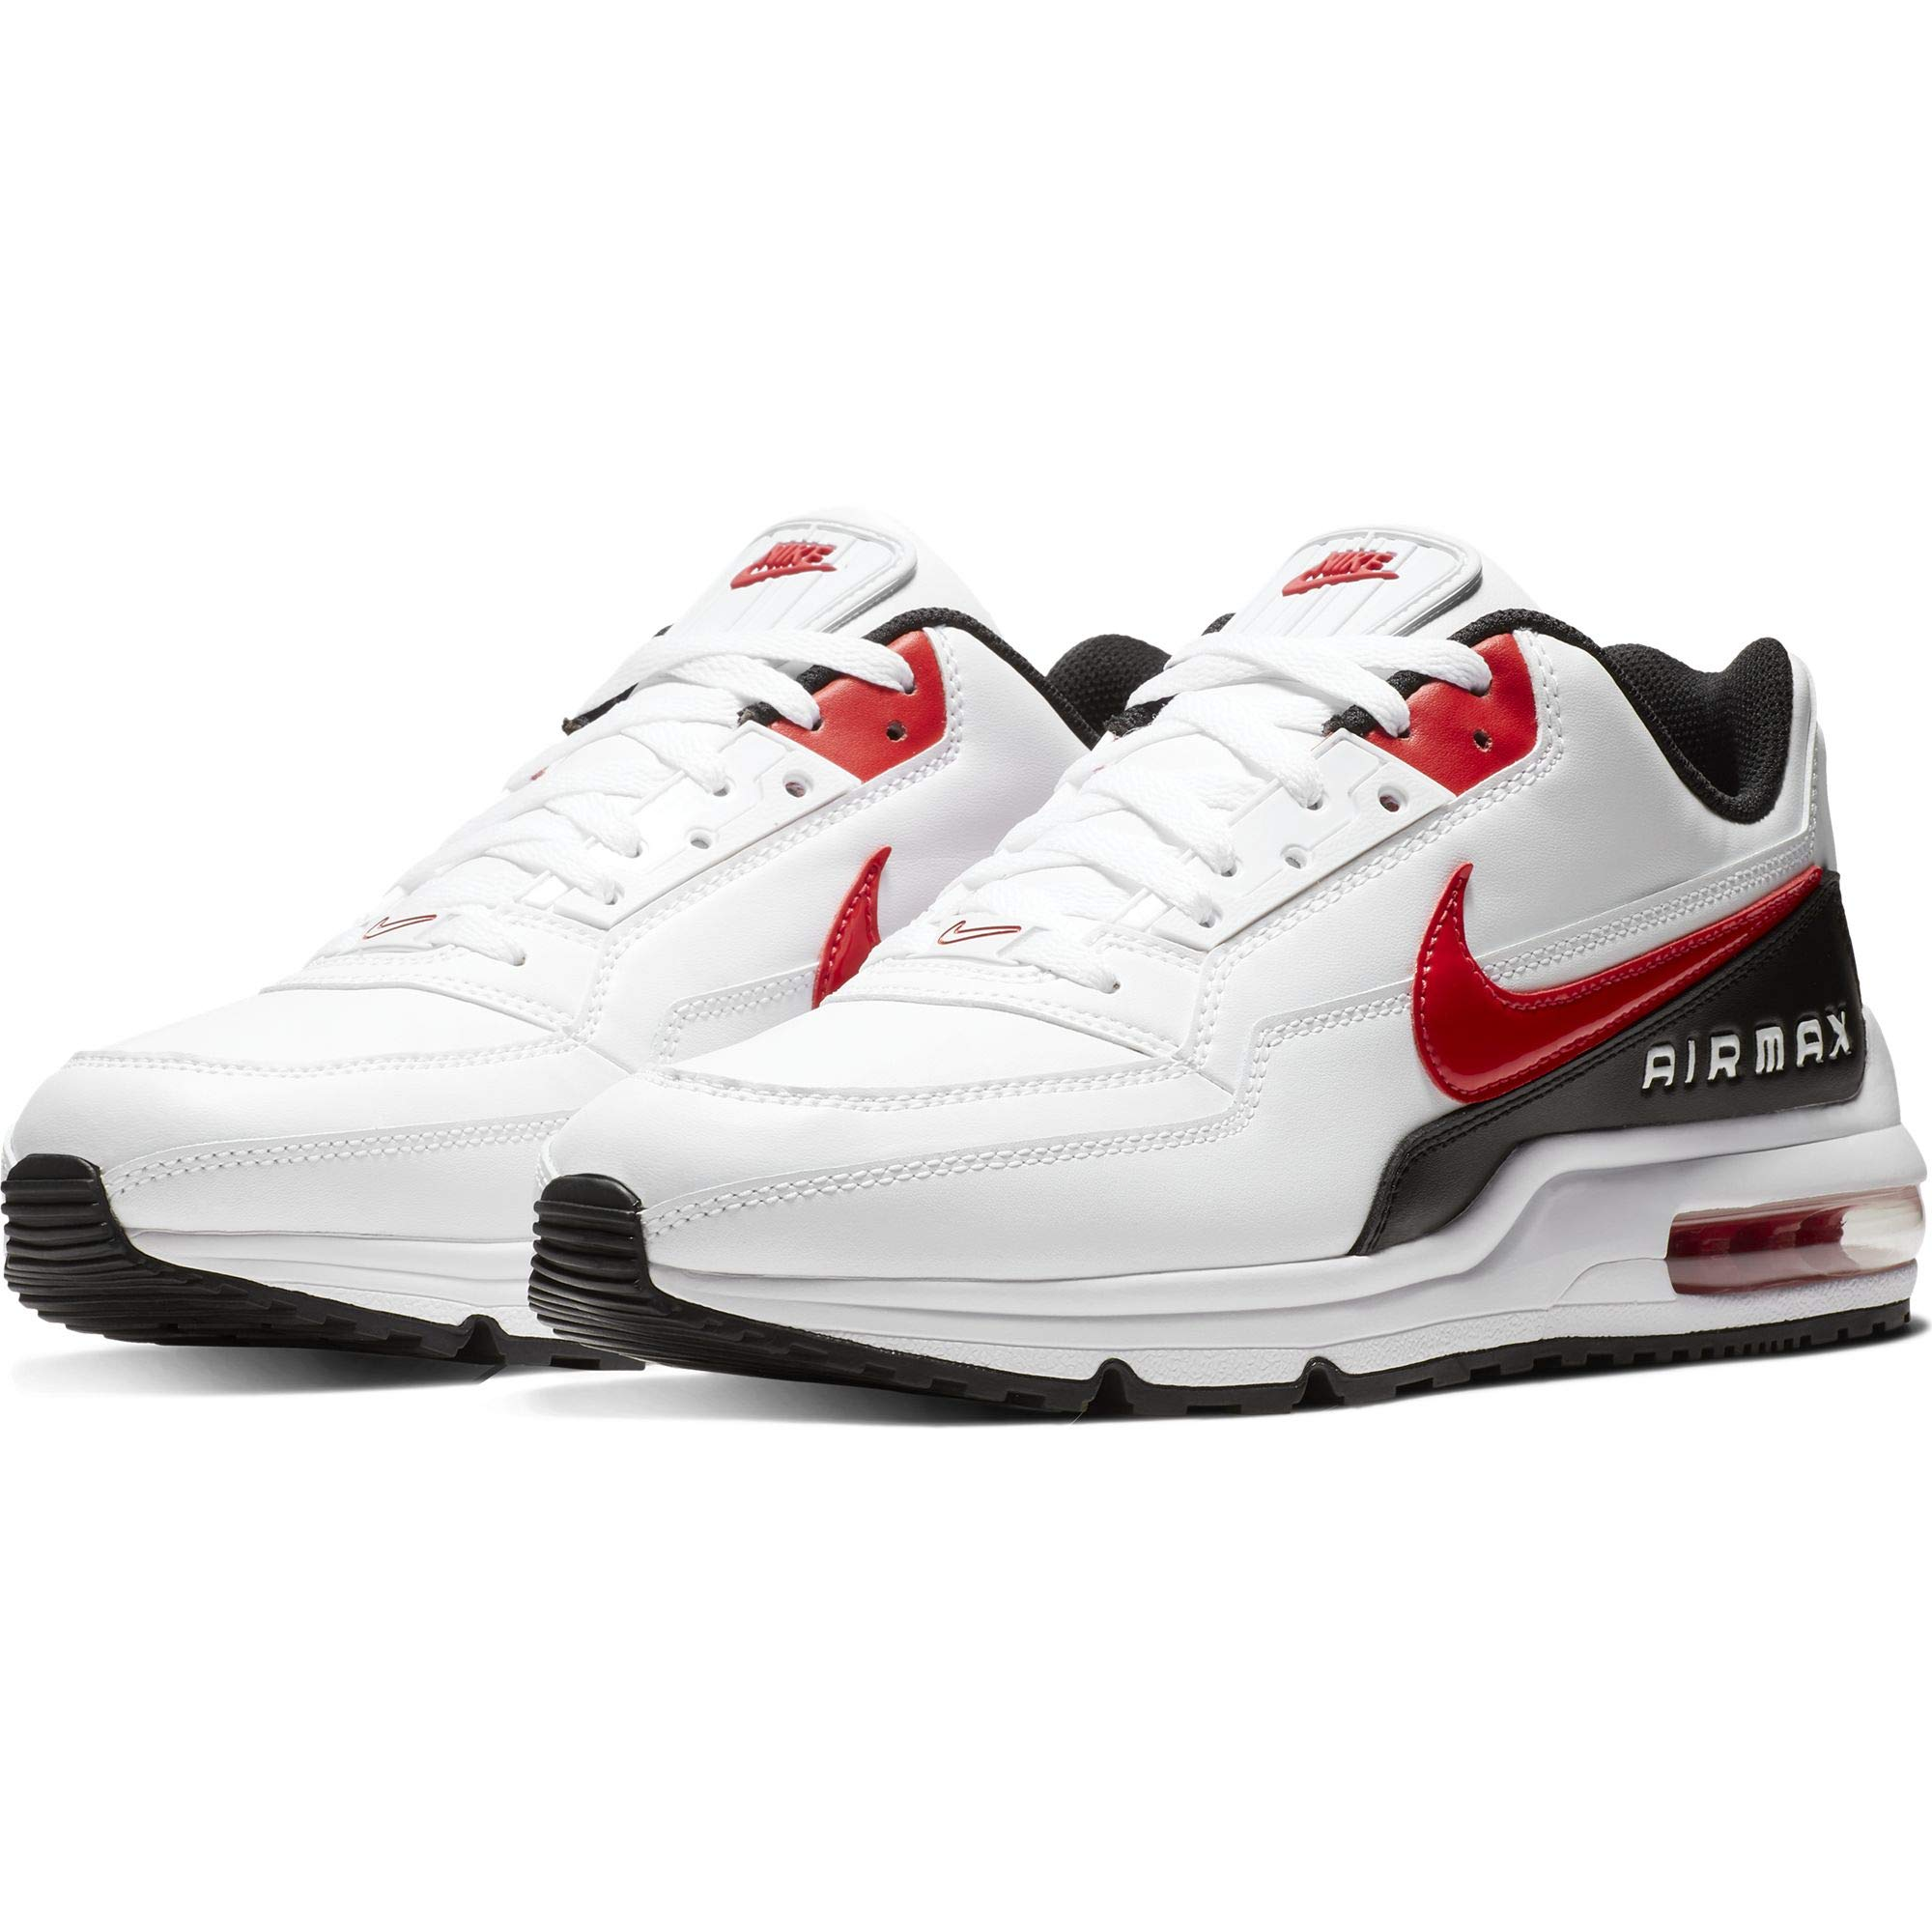 best service 281f8 c1aab Galleon - NIKE Air Max LTD 3 Men s Shoes White University Red Black  Bv1171-100 (8 D(M) US)